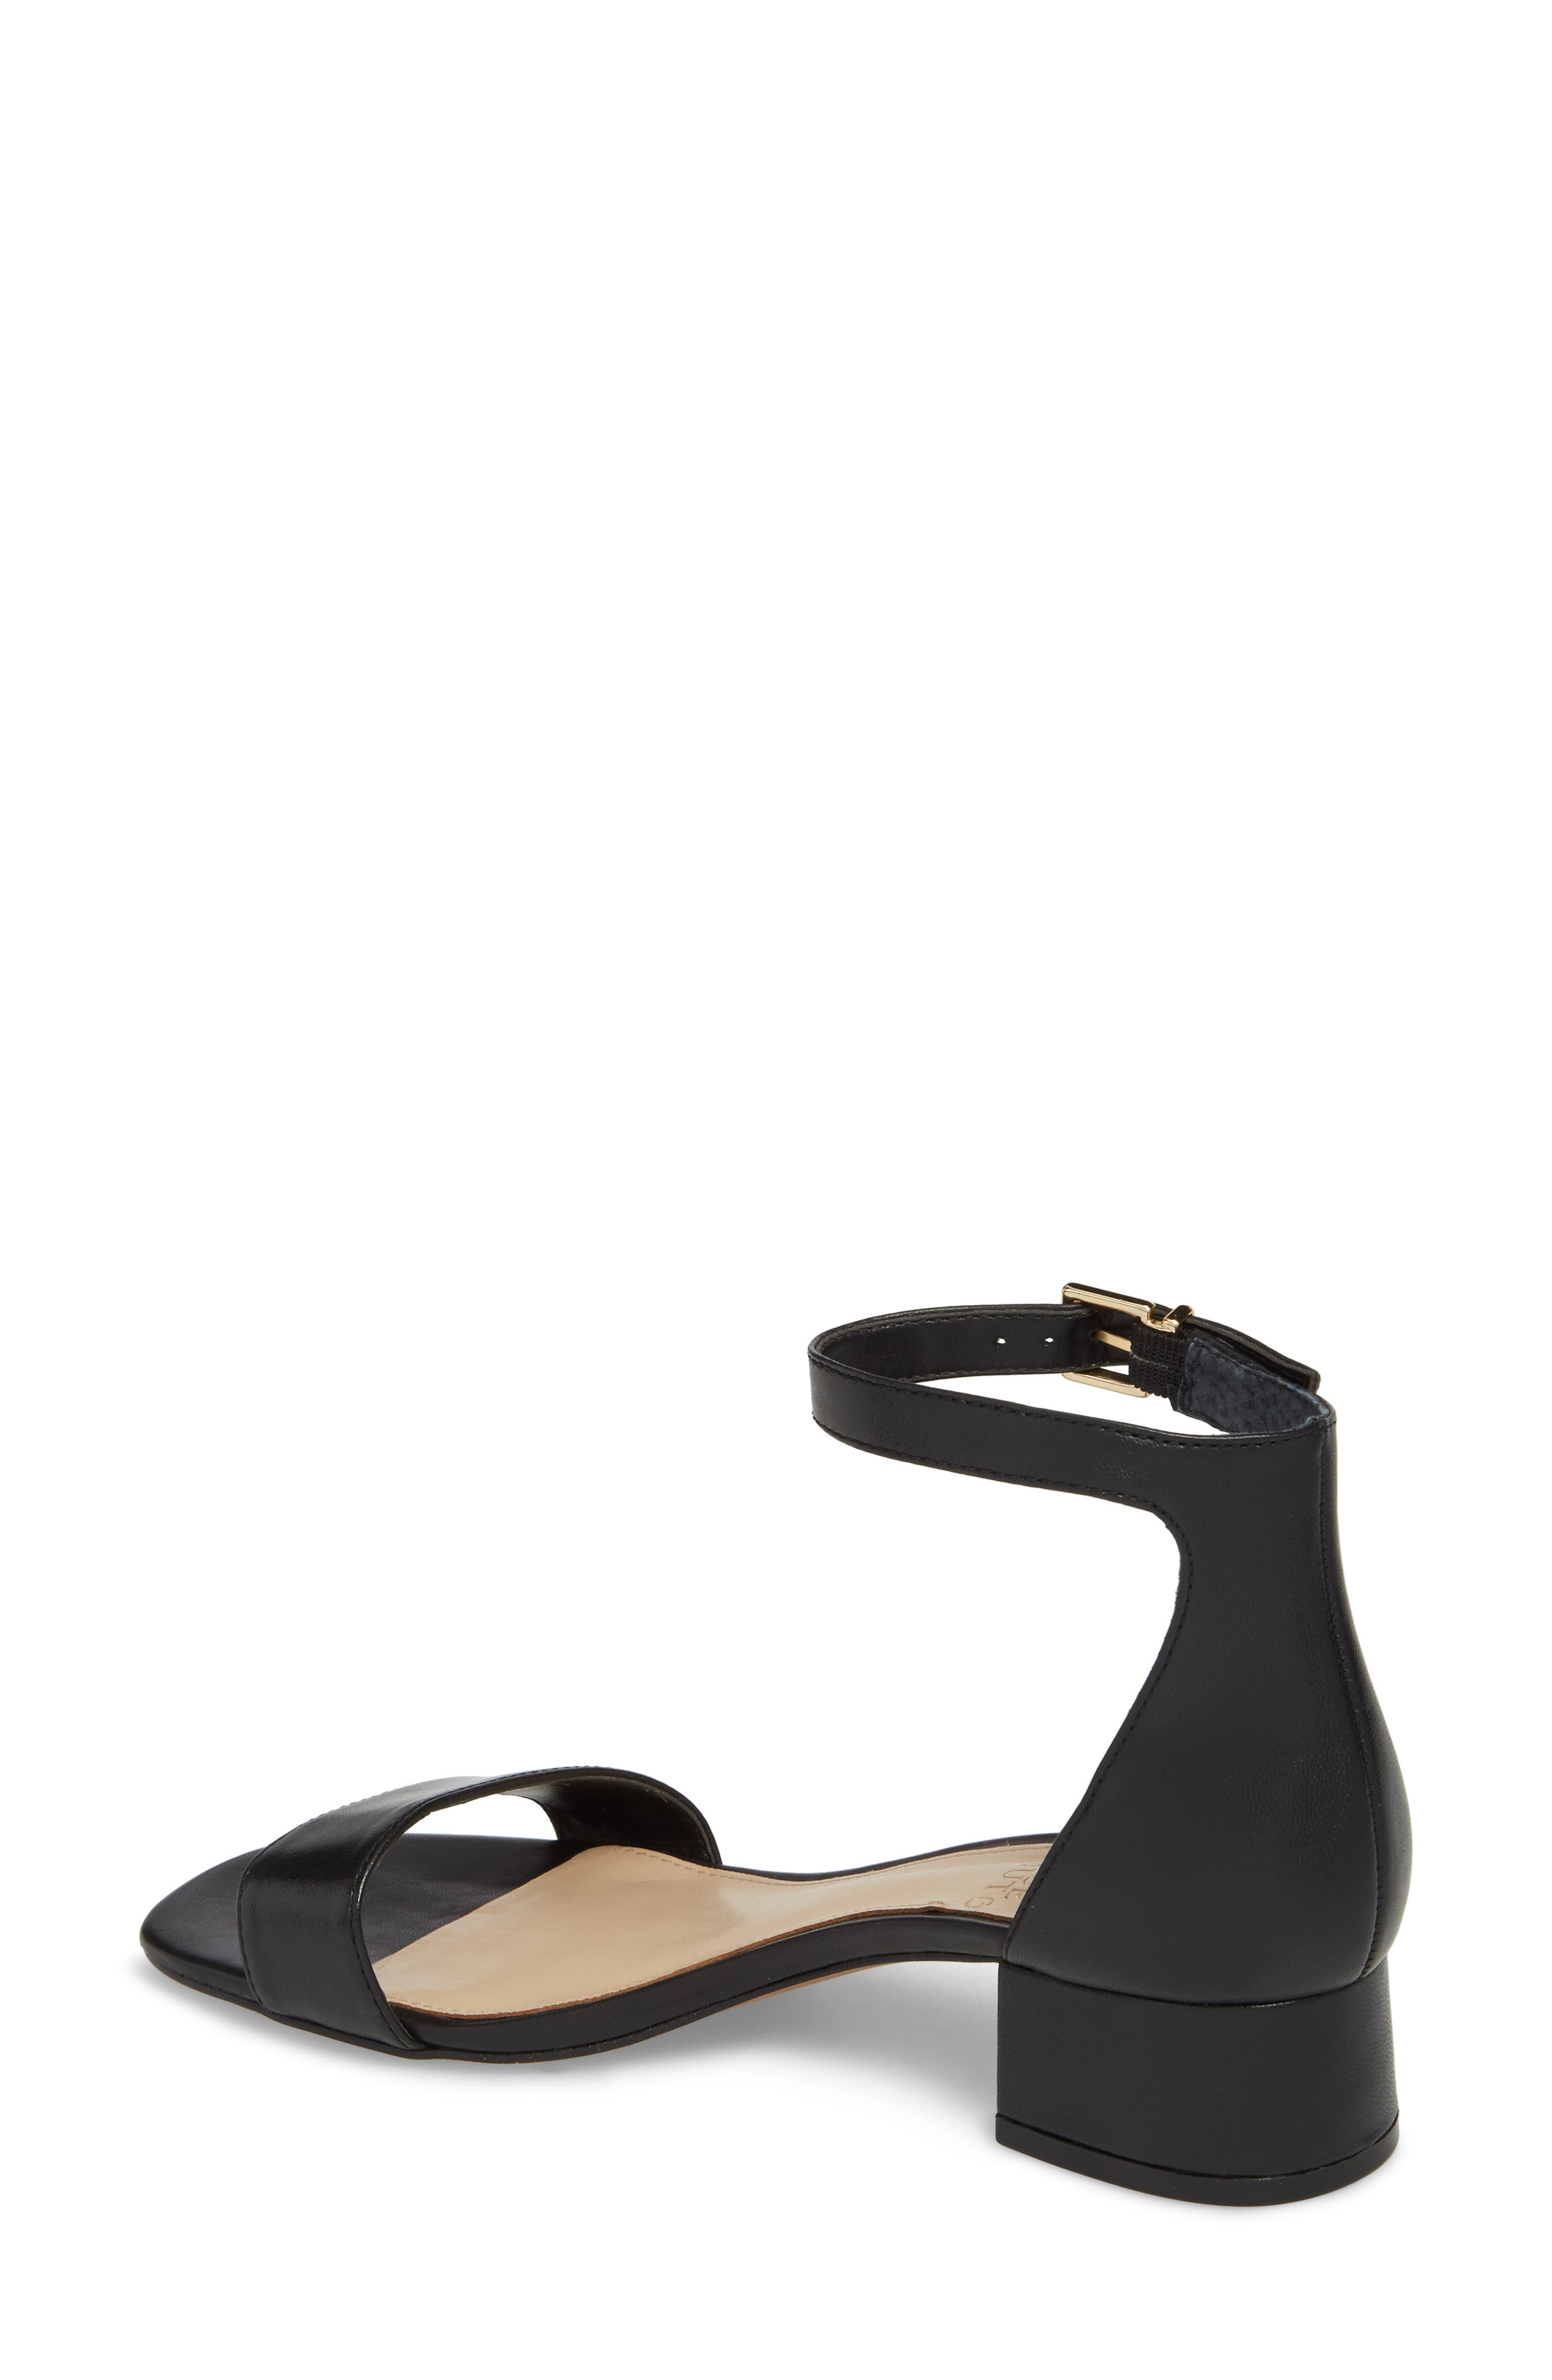 VINCE CAMUTO, Sasseta Sandal, Alternate thumbnail 2, color, BLACK LEATHER